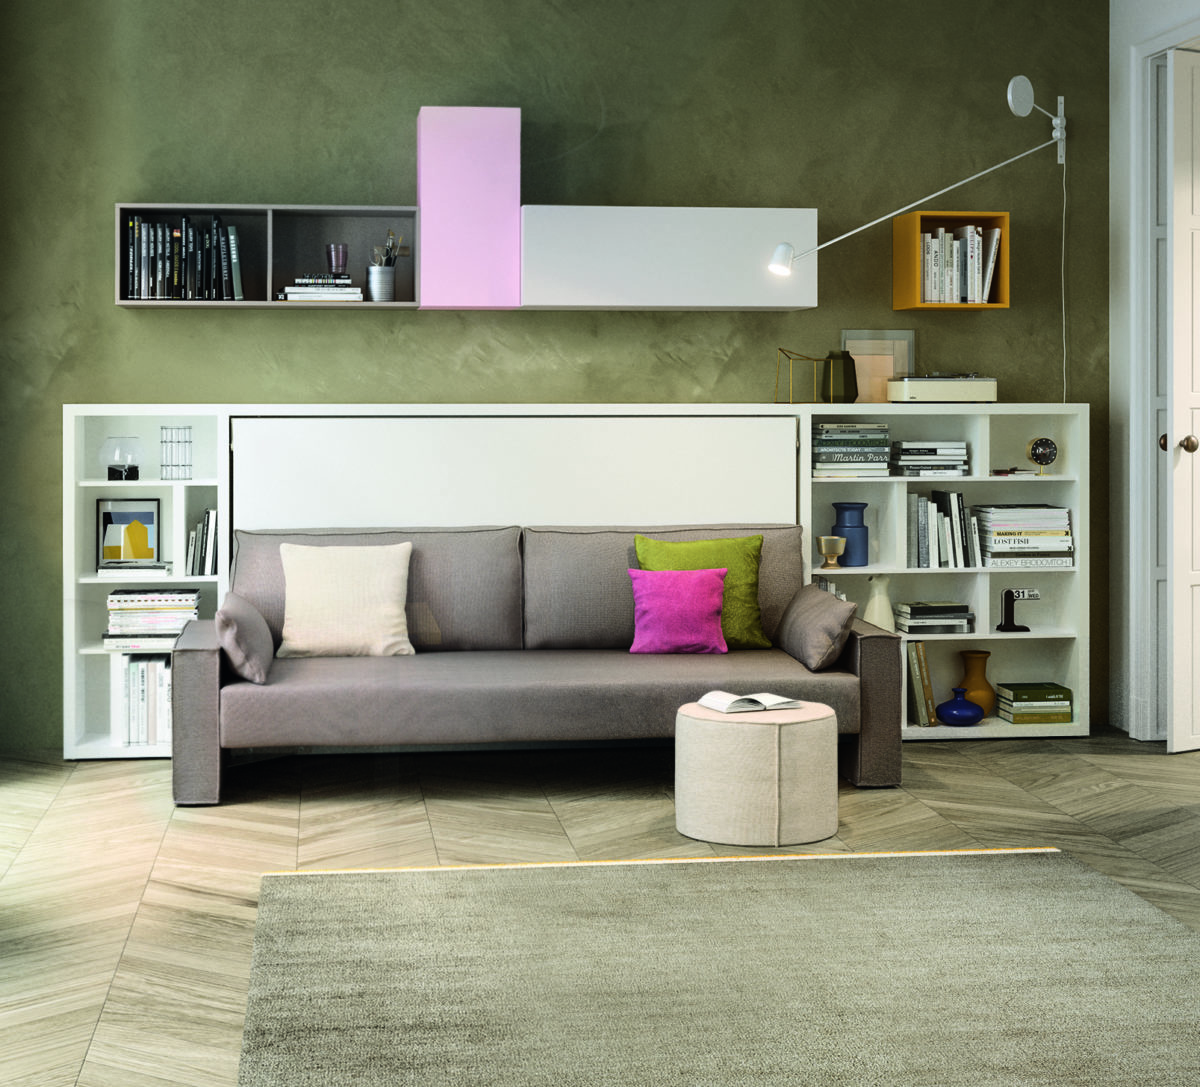 Large Sofa Beds Everyday Use Sofa Beds Vs Wall Beds Resource Furniture